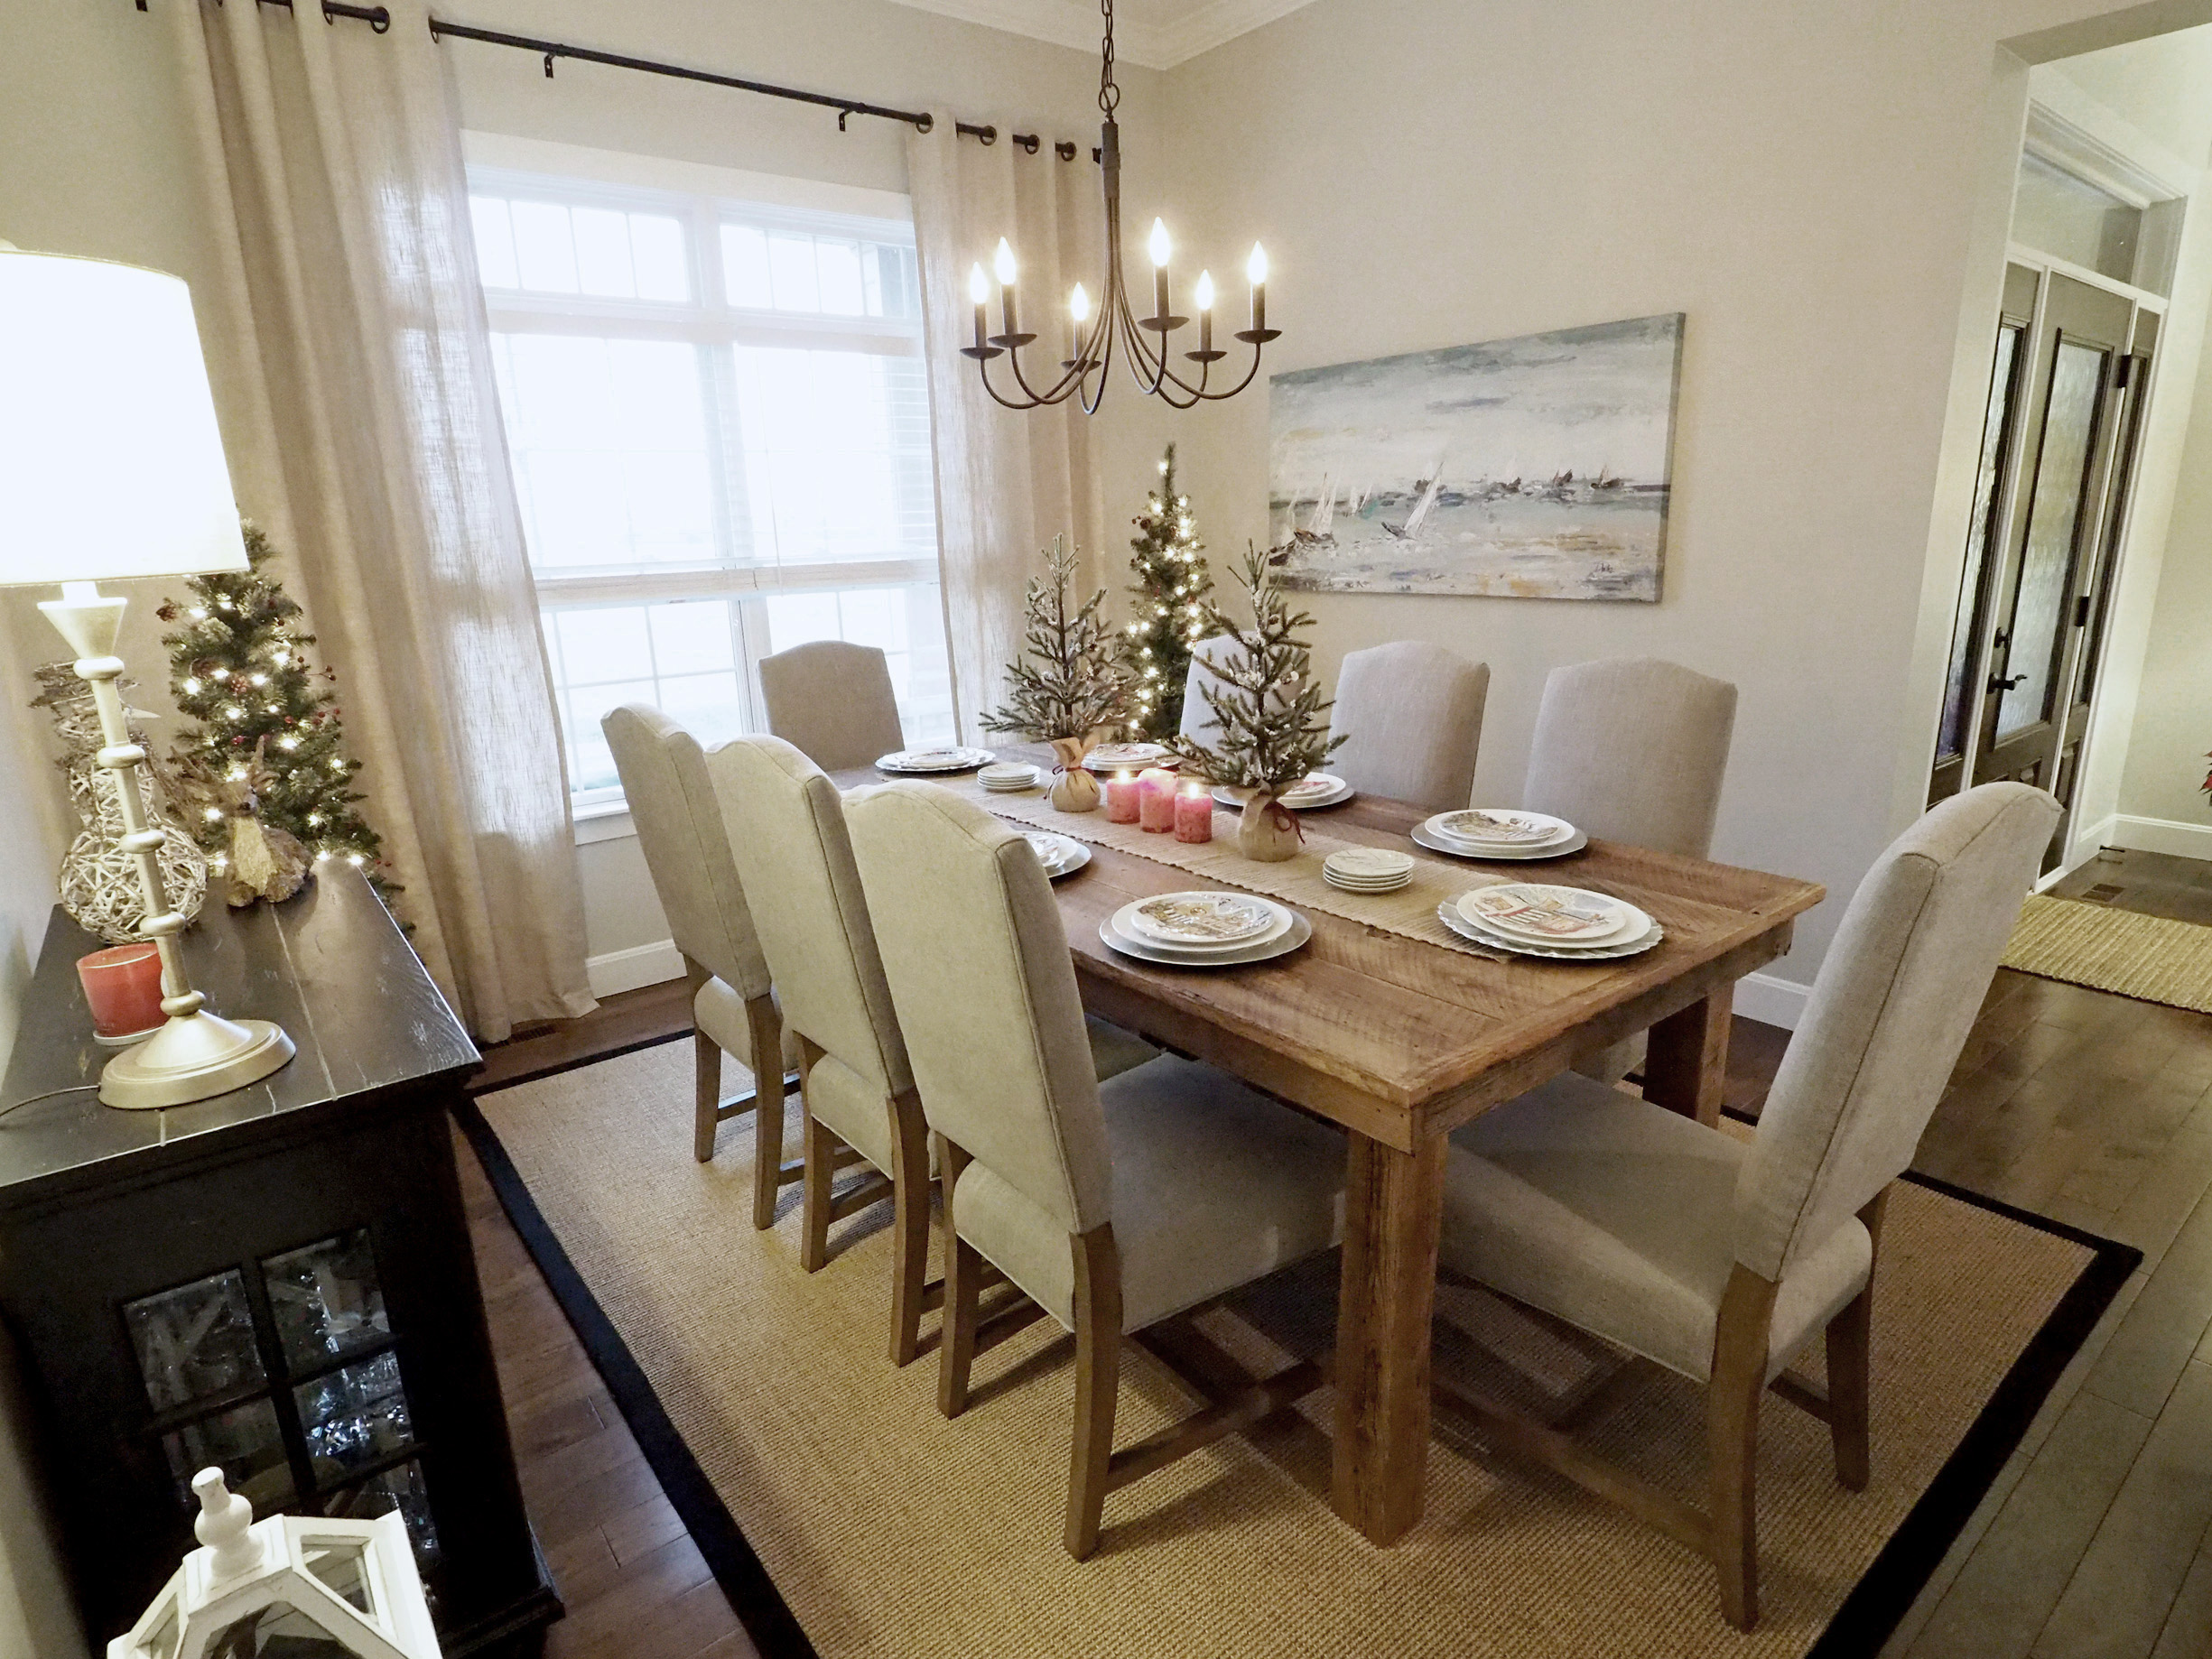 Ashton Non-Tufted Dining Chairs from  Pottery Barn  - Color is Silver Taupe